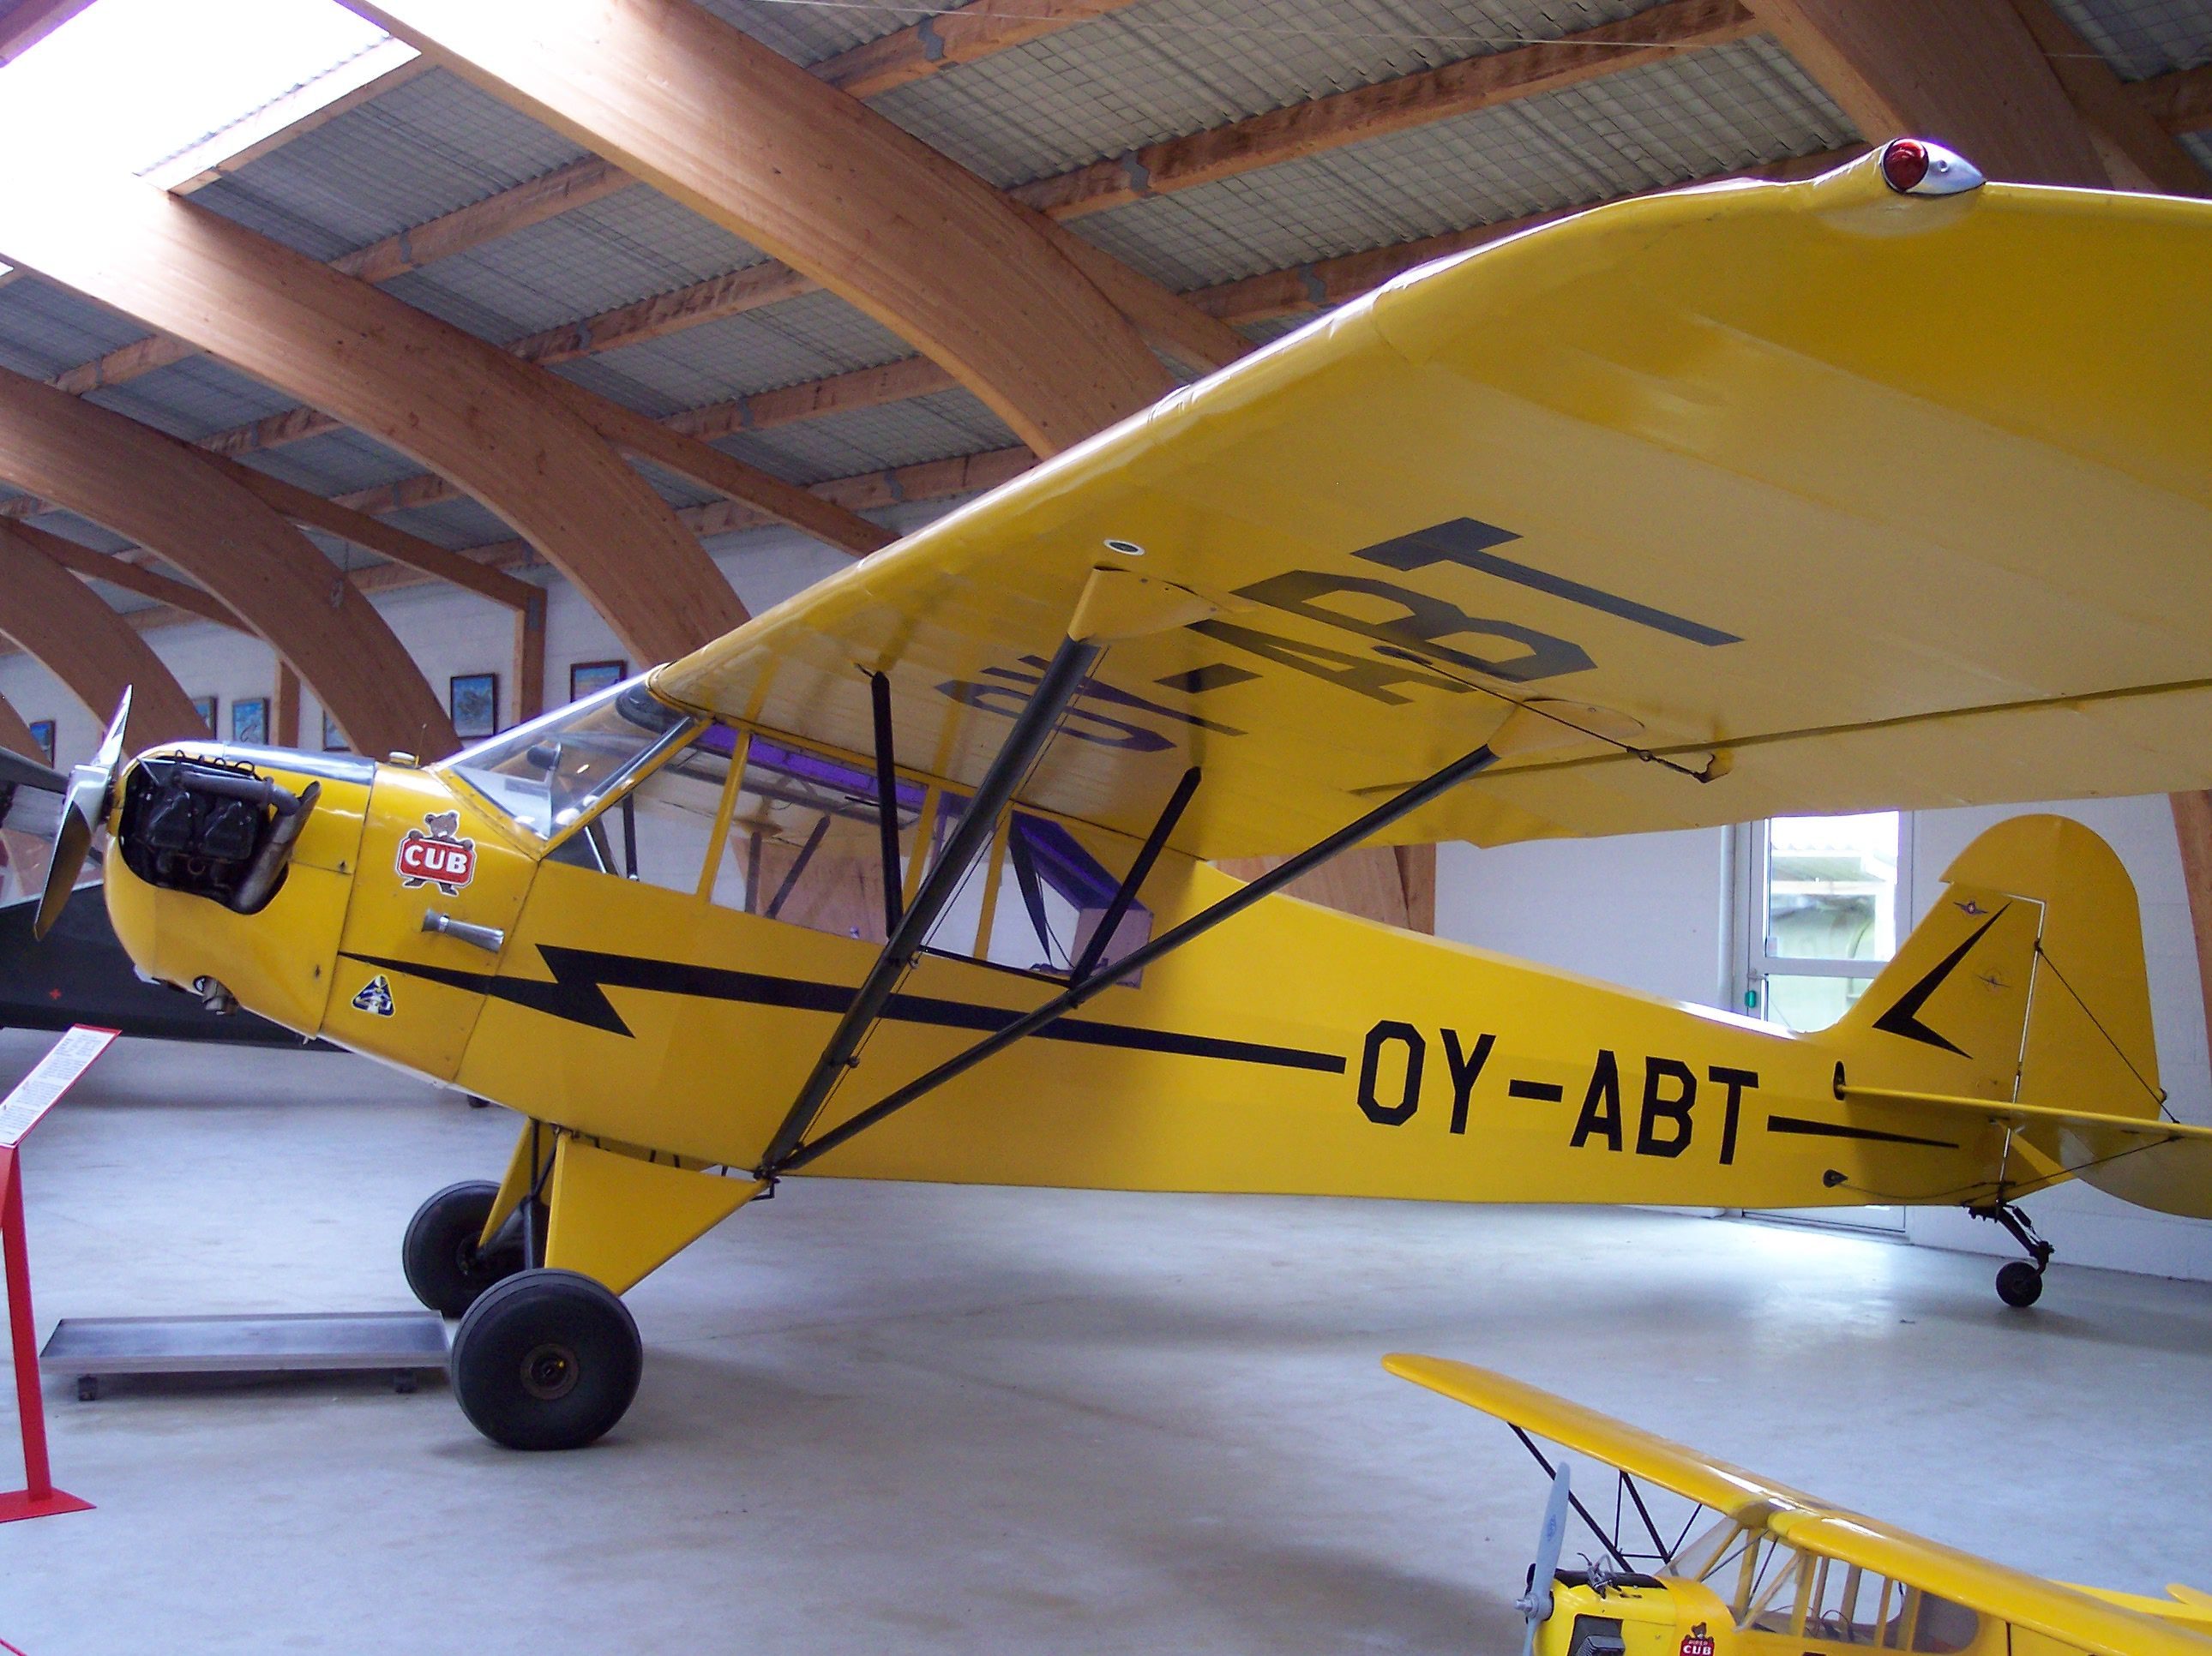 model air planes with File Piper Cub J 3 F 50 on File Piper Cub J 3 F 50 as well 85819514 furthermore 1 72 Corgi British 26 together with Photo gallery as well 10 DKT Airplanes H555449.